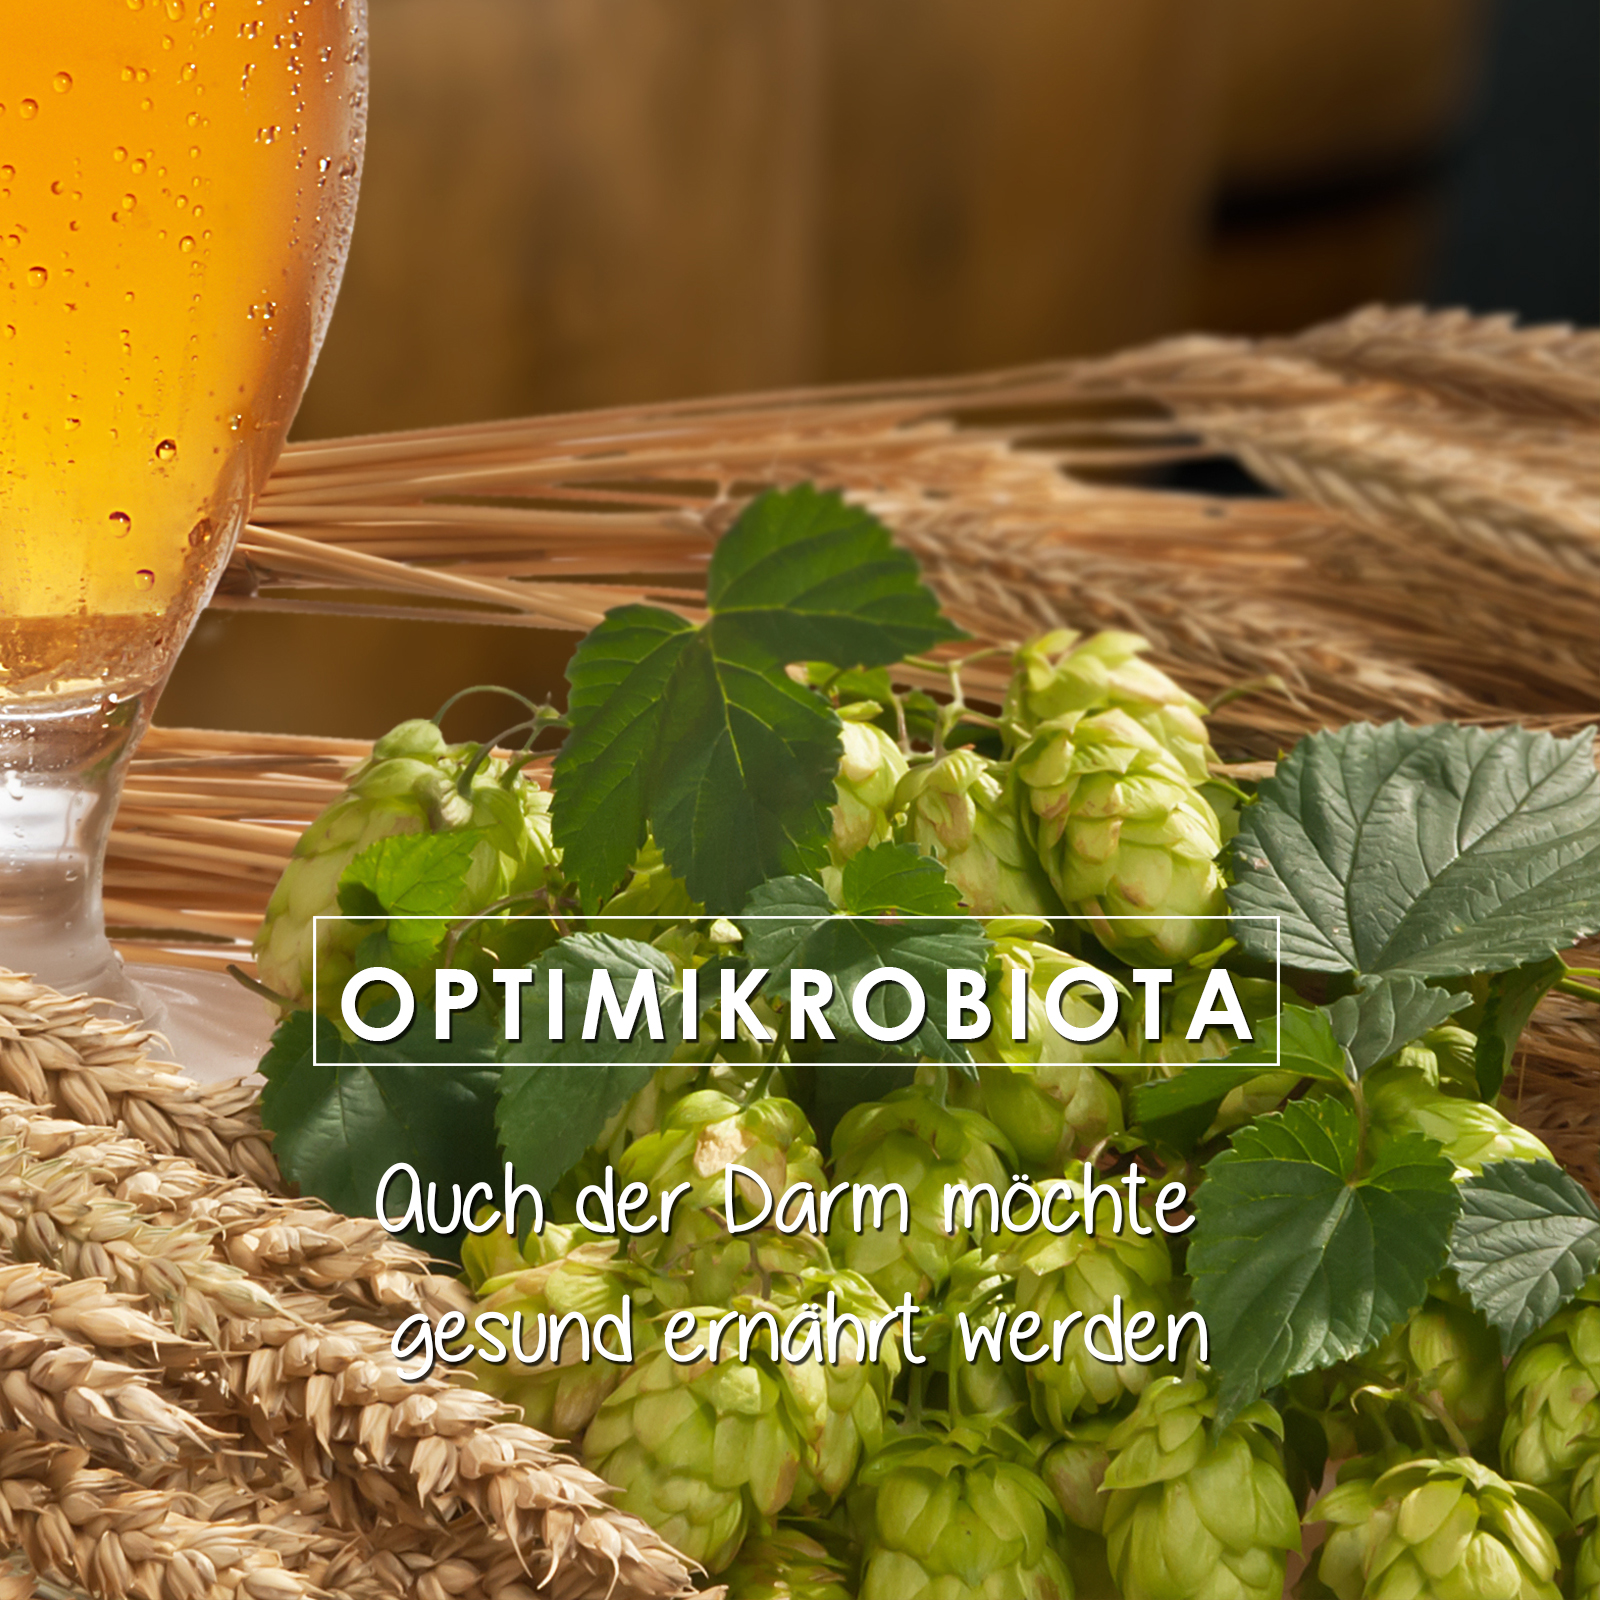 OptiMikrobiota - Bierhefe in Pelletform für eine aktive Verdauung